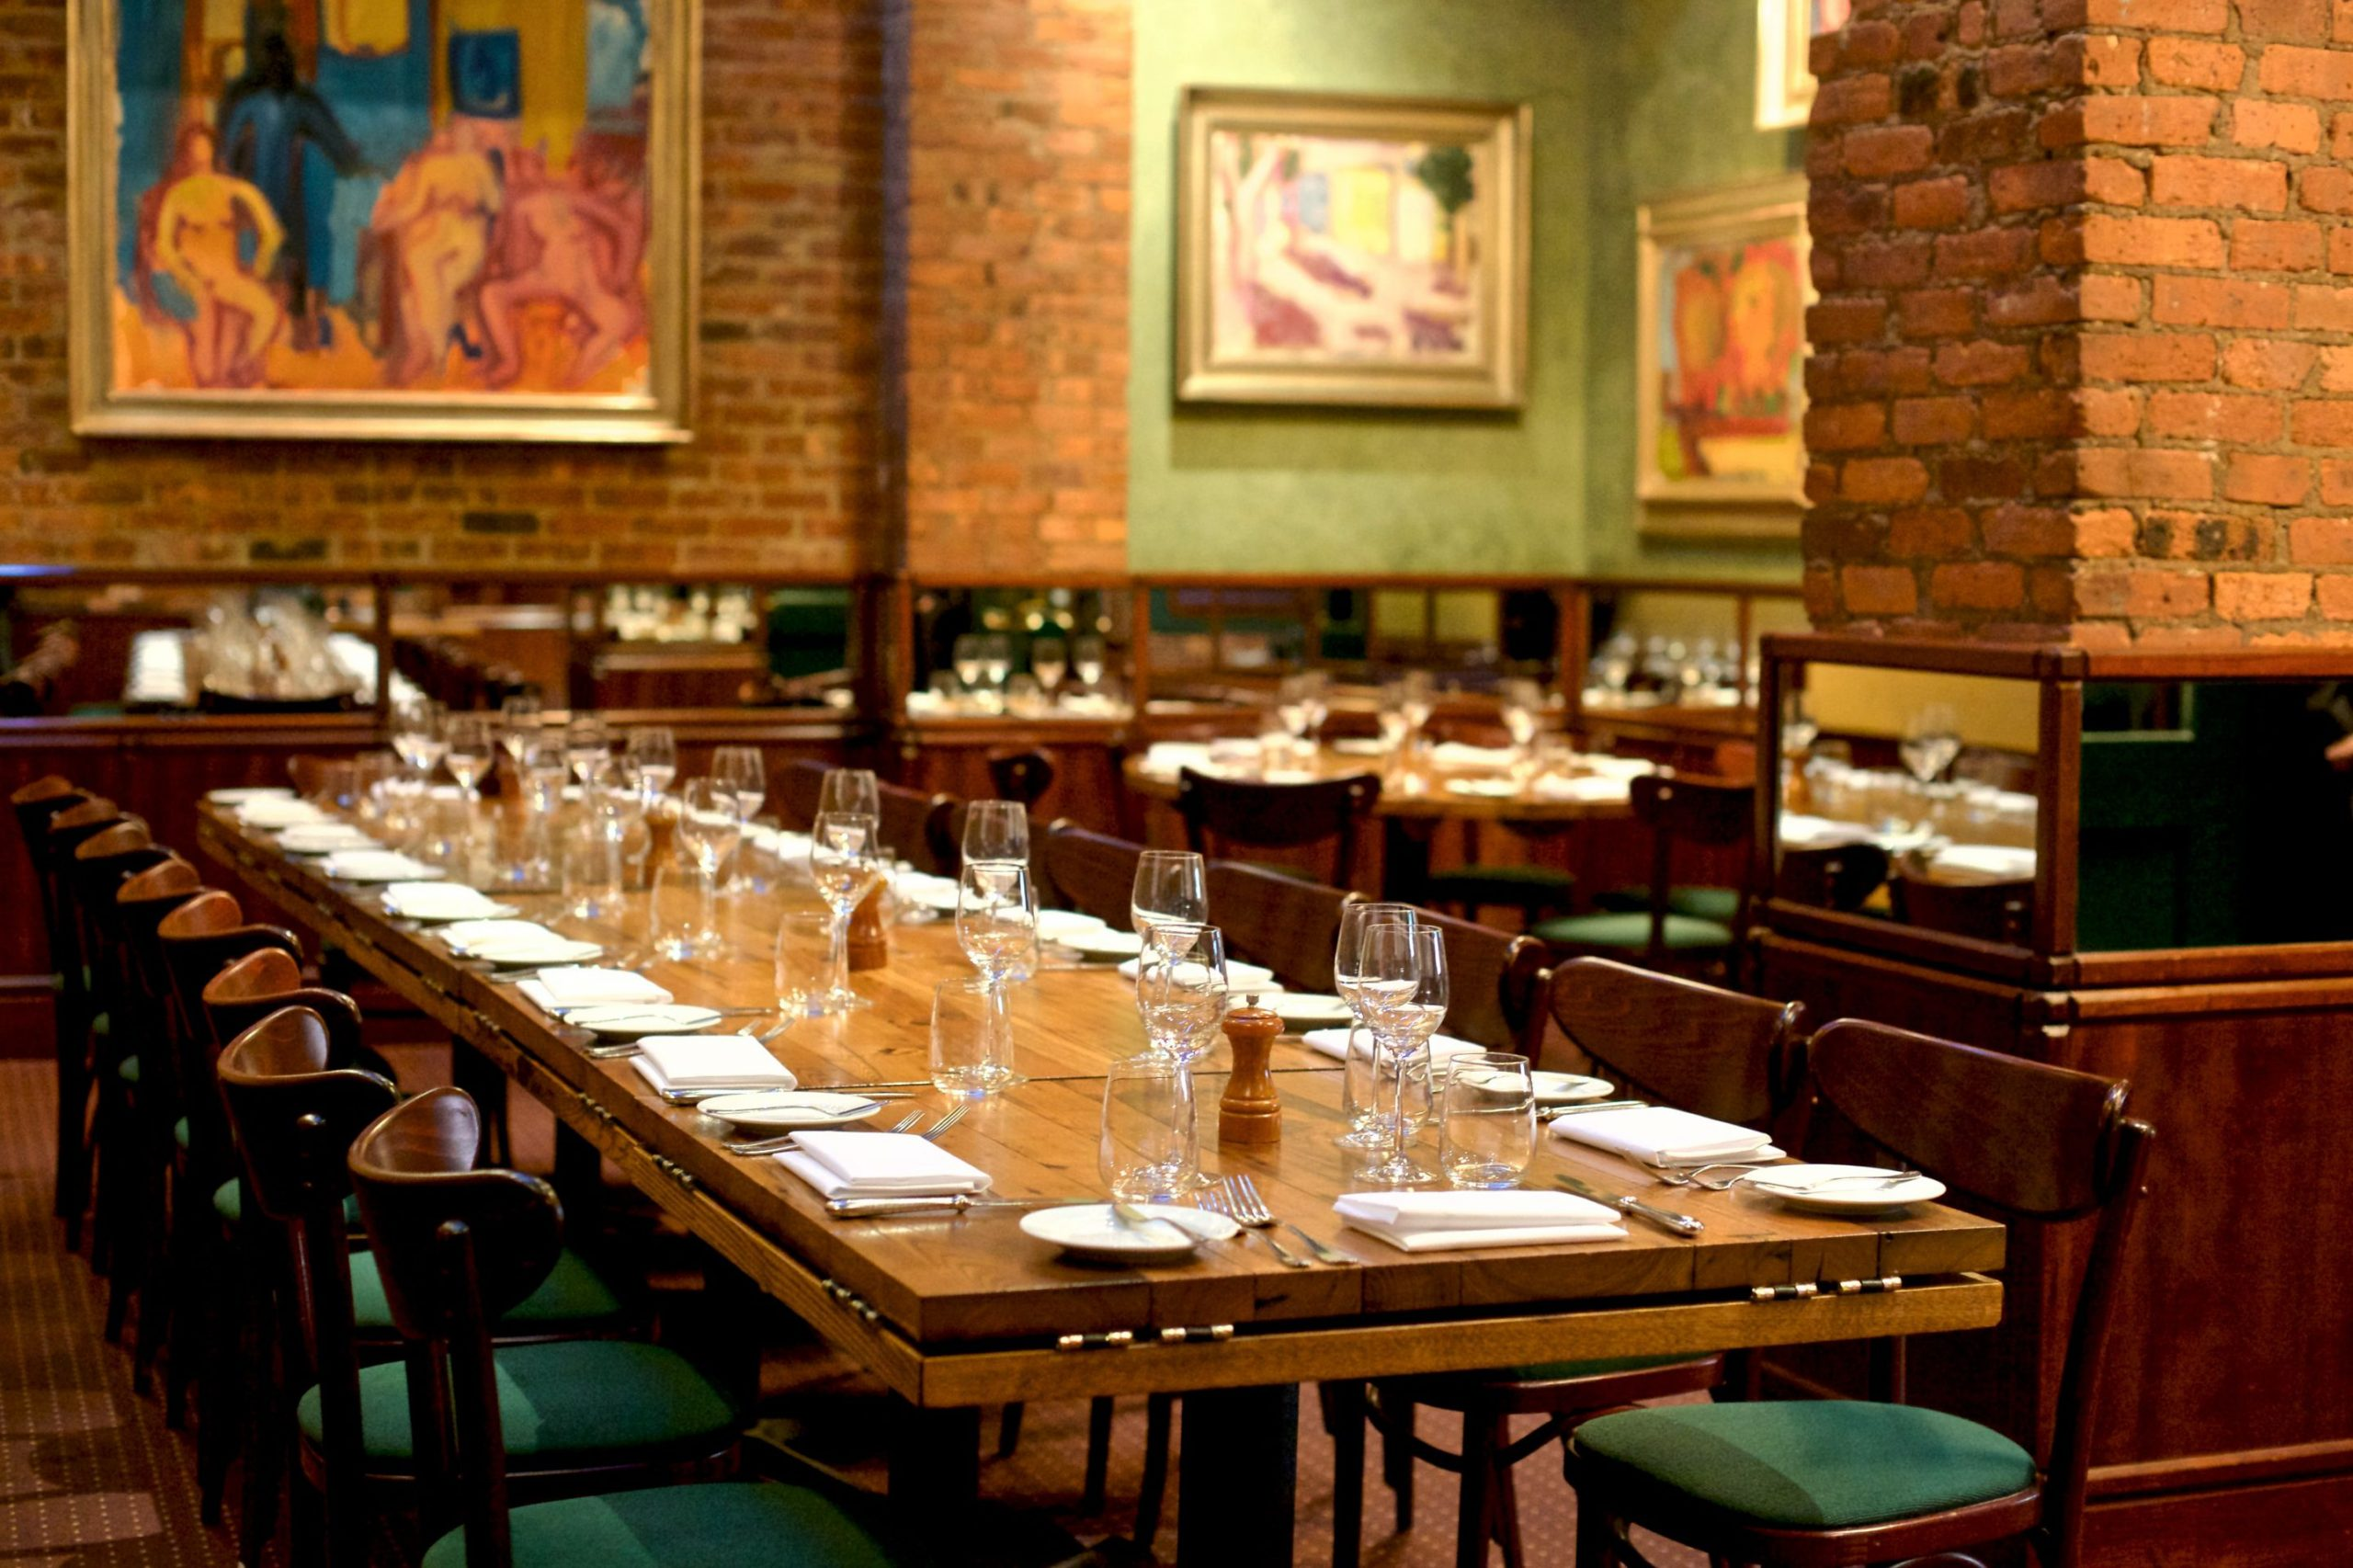 Long wooden table in a room with exposed brick walls and large paintings